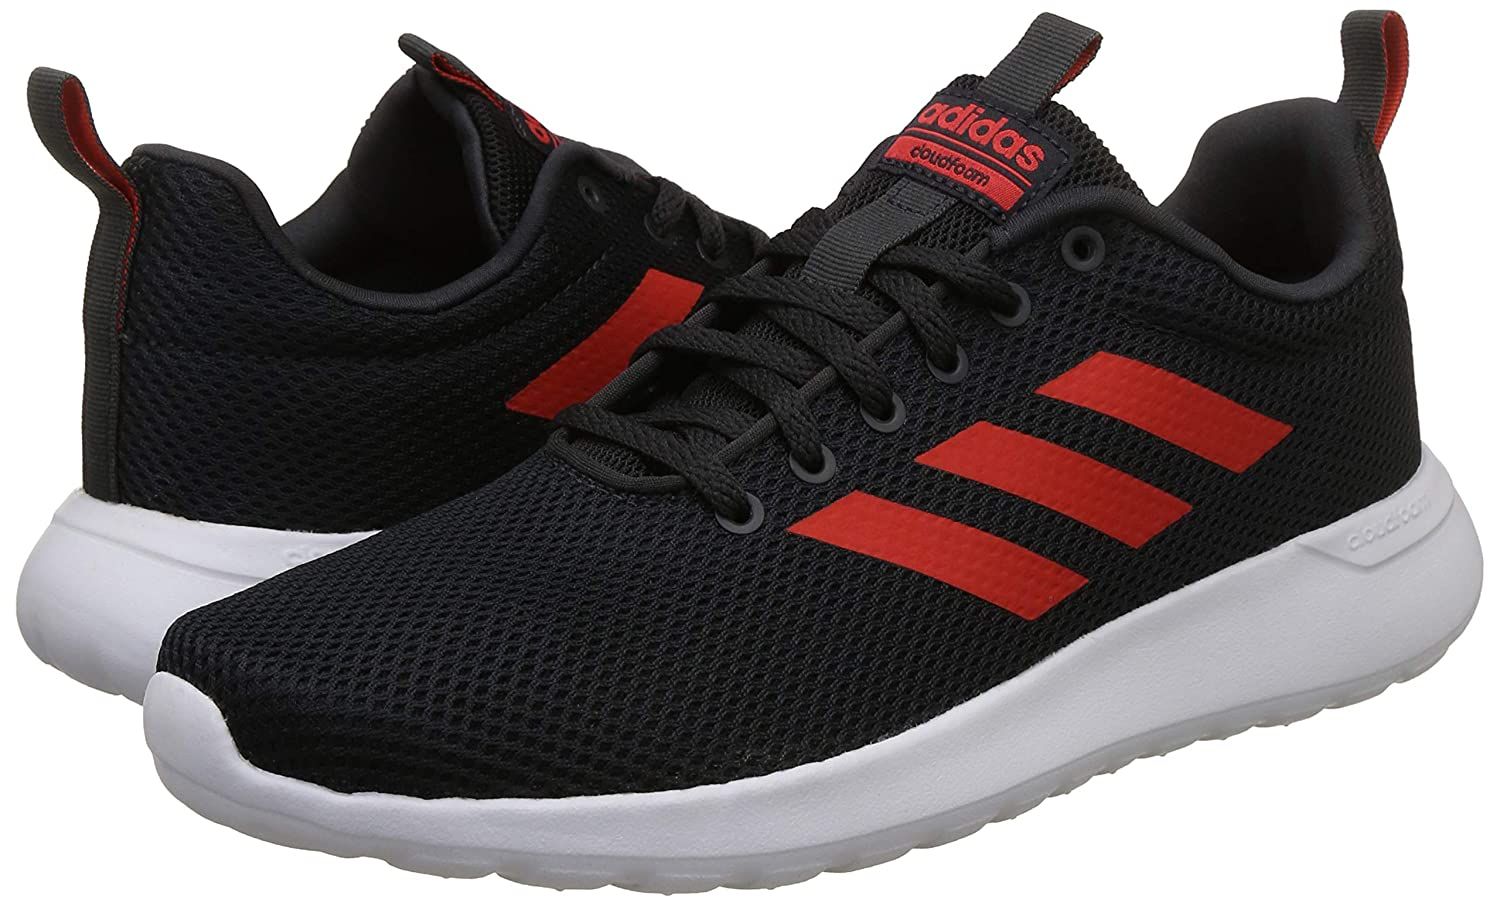 save off edc81 d4cf2 Adidas Mens Lite Racer CLN CarbonHirereFtwwht Running Shoes-12 UKIndia  (47.33 EU) (B96572) Buy Online at Low Prices in India - Amazon.in